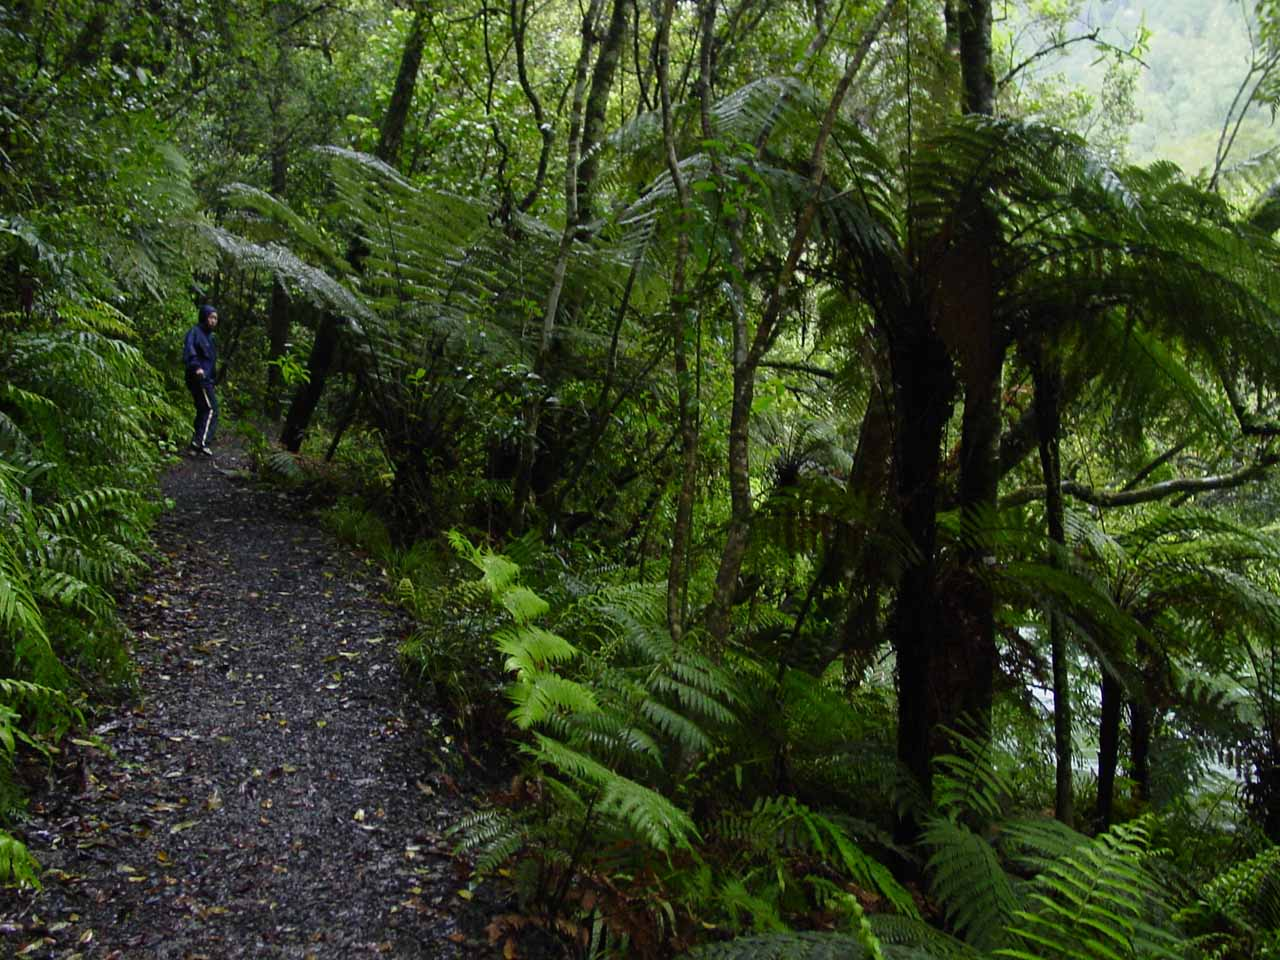 Julie on the trail as we went looking for Tarawera Falls